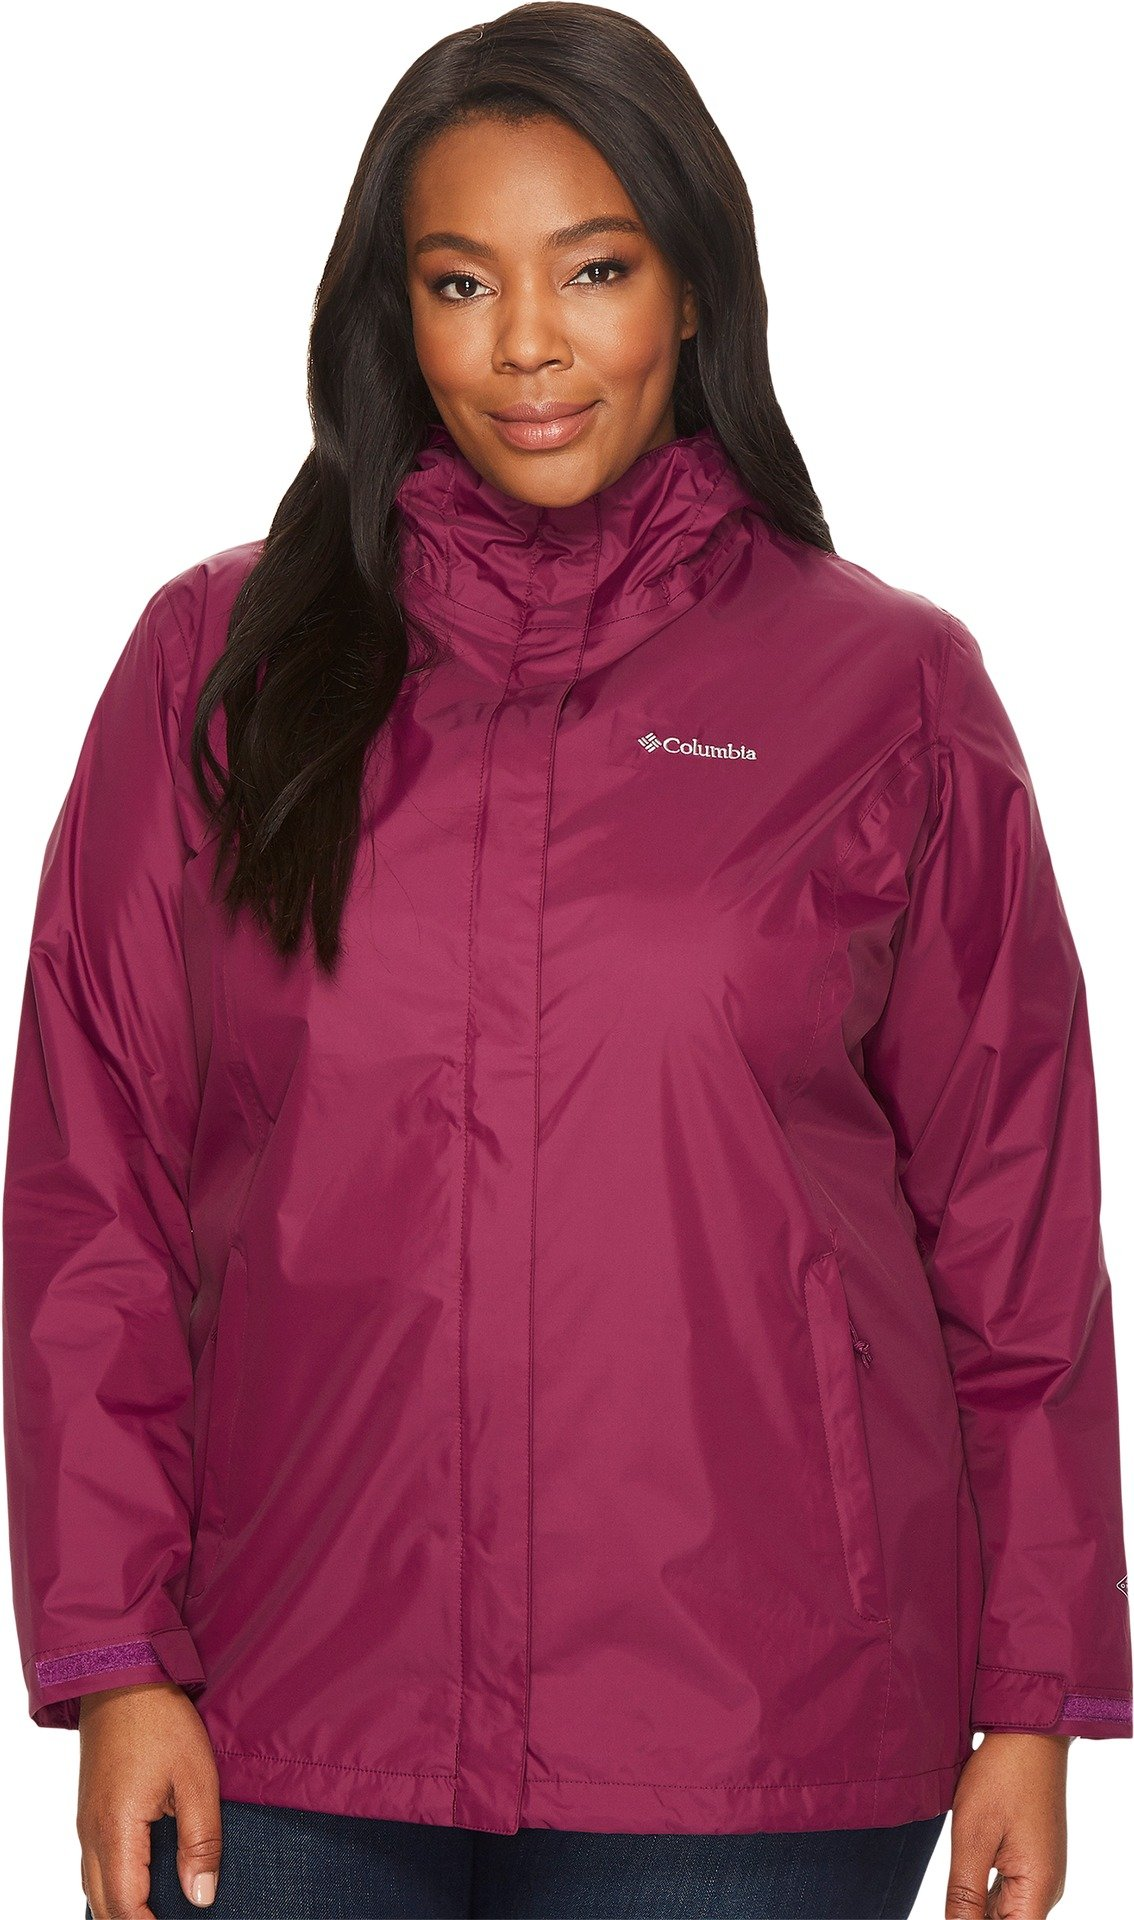 Columbia Women's SizeArcadia Plus Size Arcadia II Jacket, Dark Raspberry, 3X